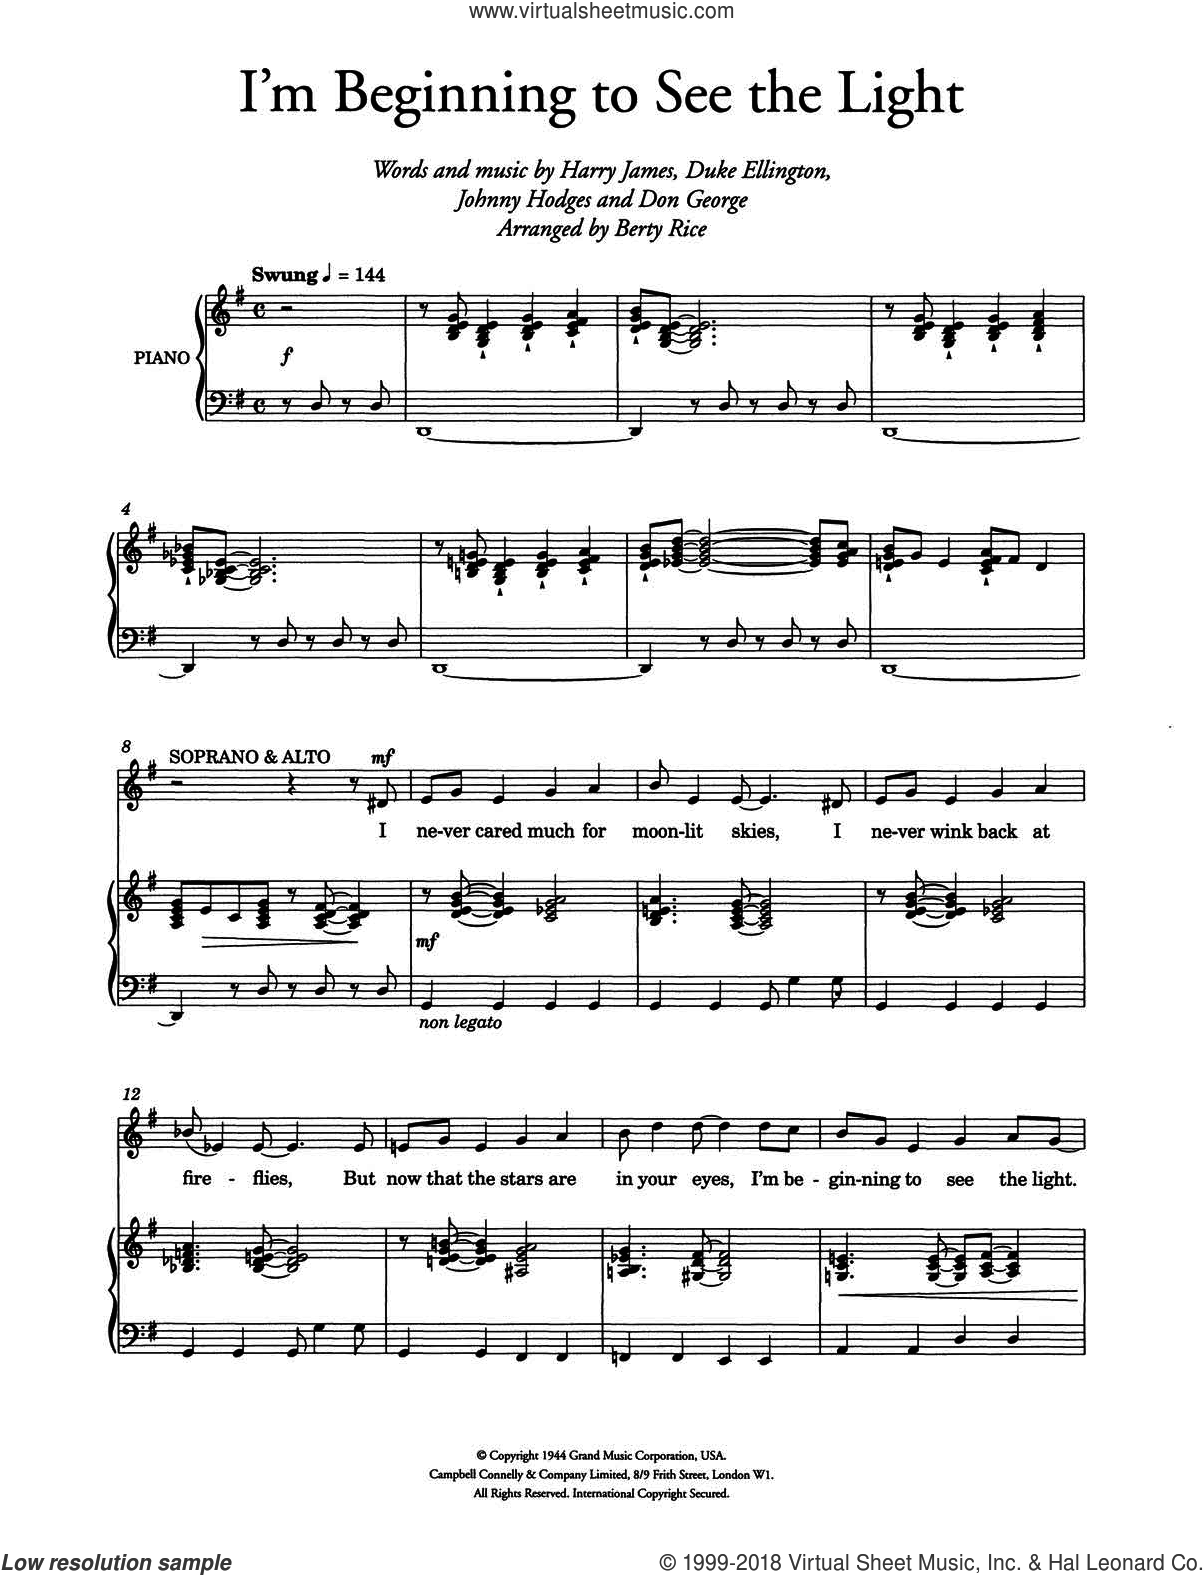 I'm Beginning To See The Light (arr. Berty Rice) sheet music for choir by Ella Fitzgerald, Berty Rice, Don George, Duke Ellington, Harry James and Johnny Hodges, intermediate skill level